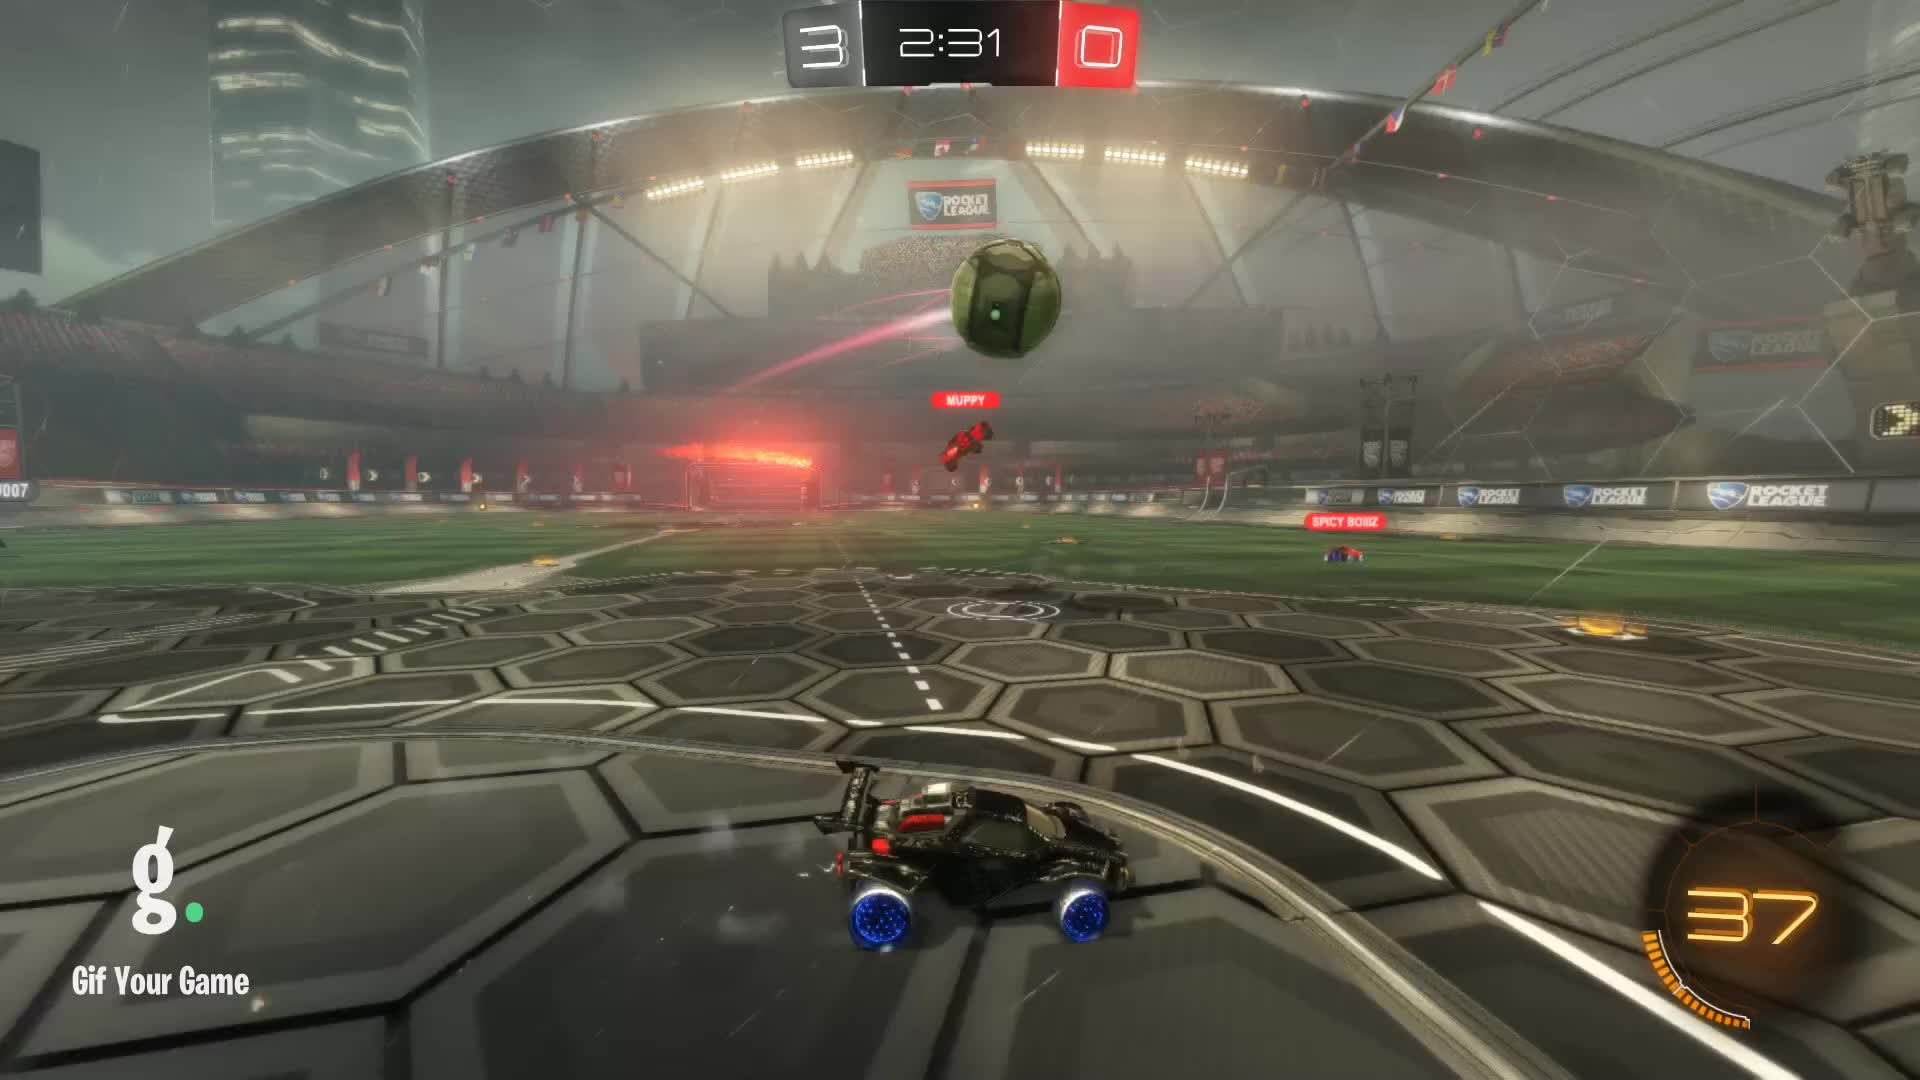 Gif Your Game, GifYourGame, Goal, Rocket League, RocketLeague, The_Real_Jar, Goal 4: The_Real_Jar GIFs